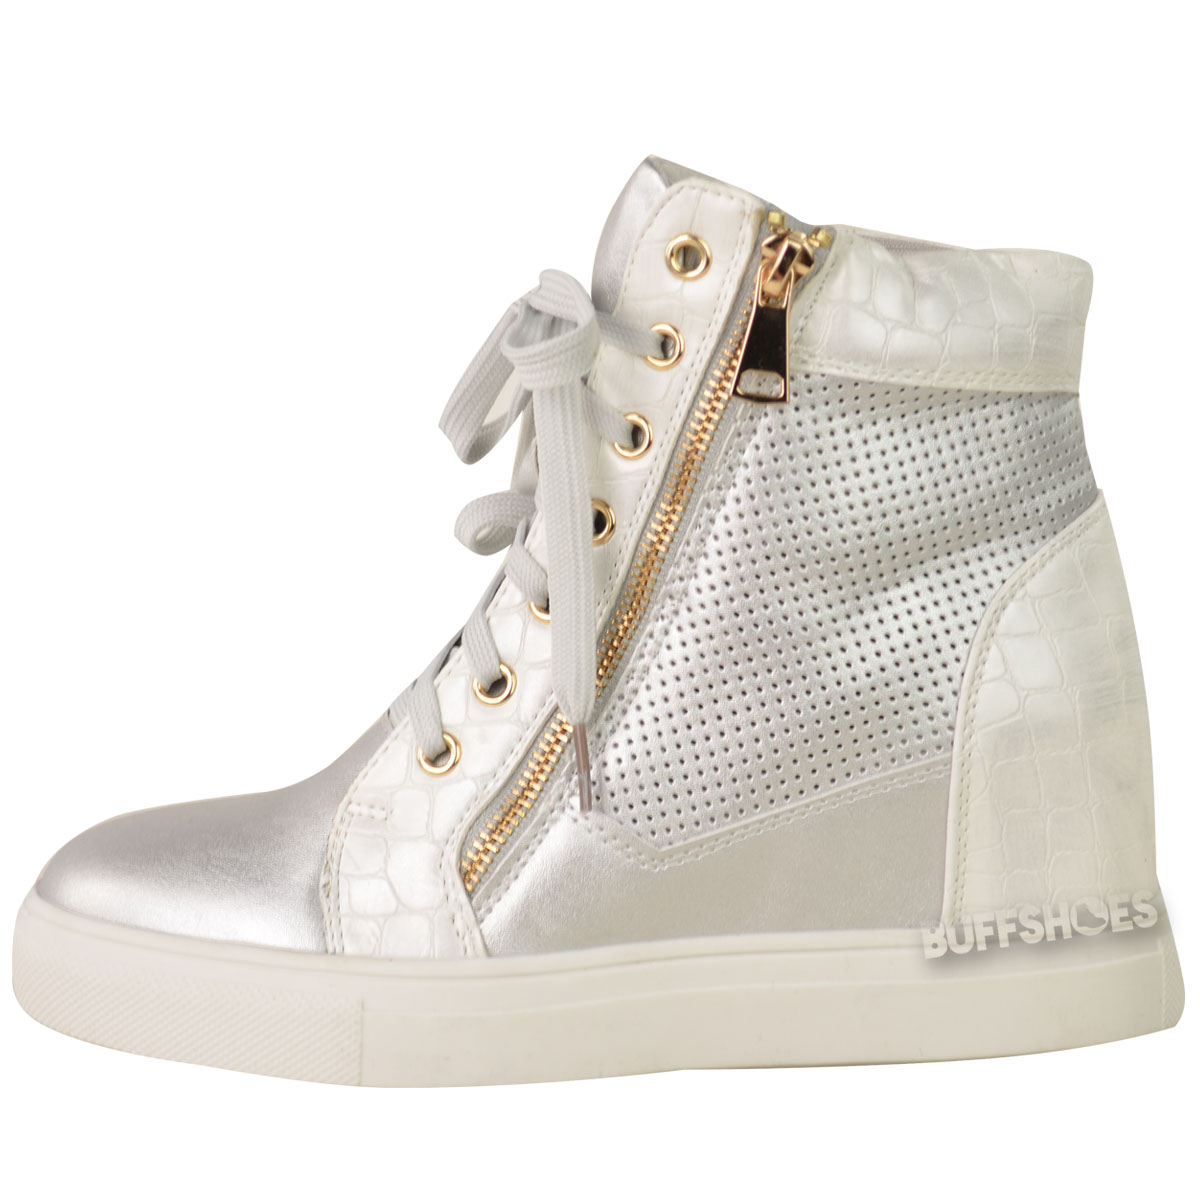 New Womens Ladies Lace Up Sneakers Trainers Hidden Wedge Heel Ankle Boots Size